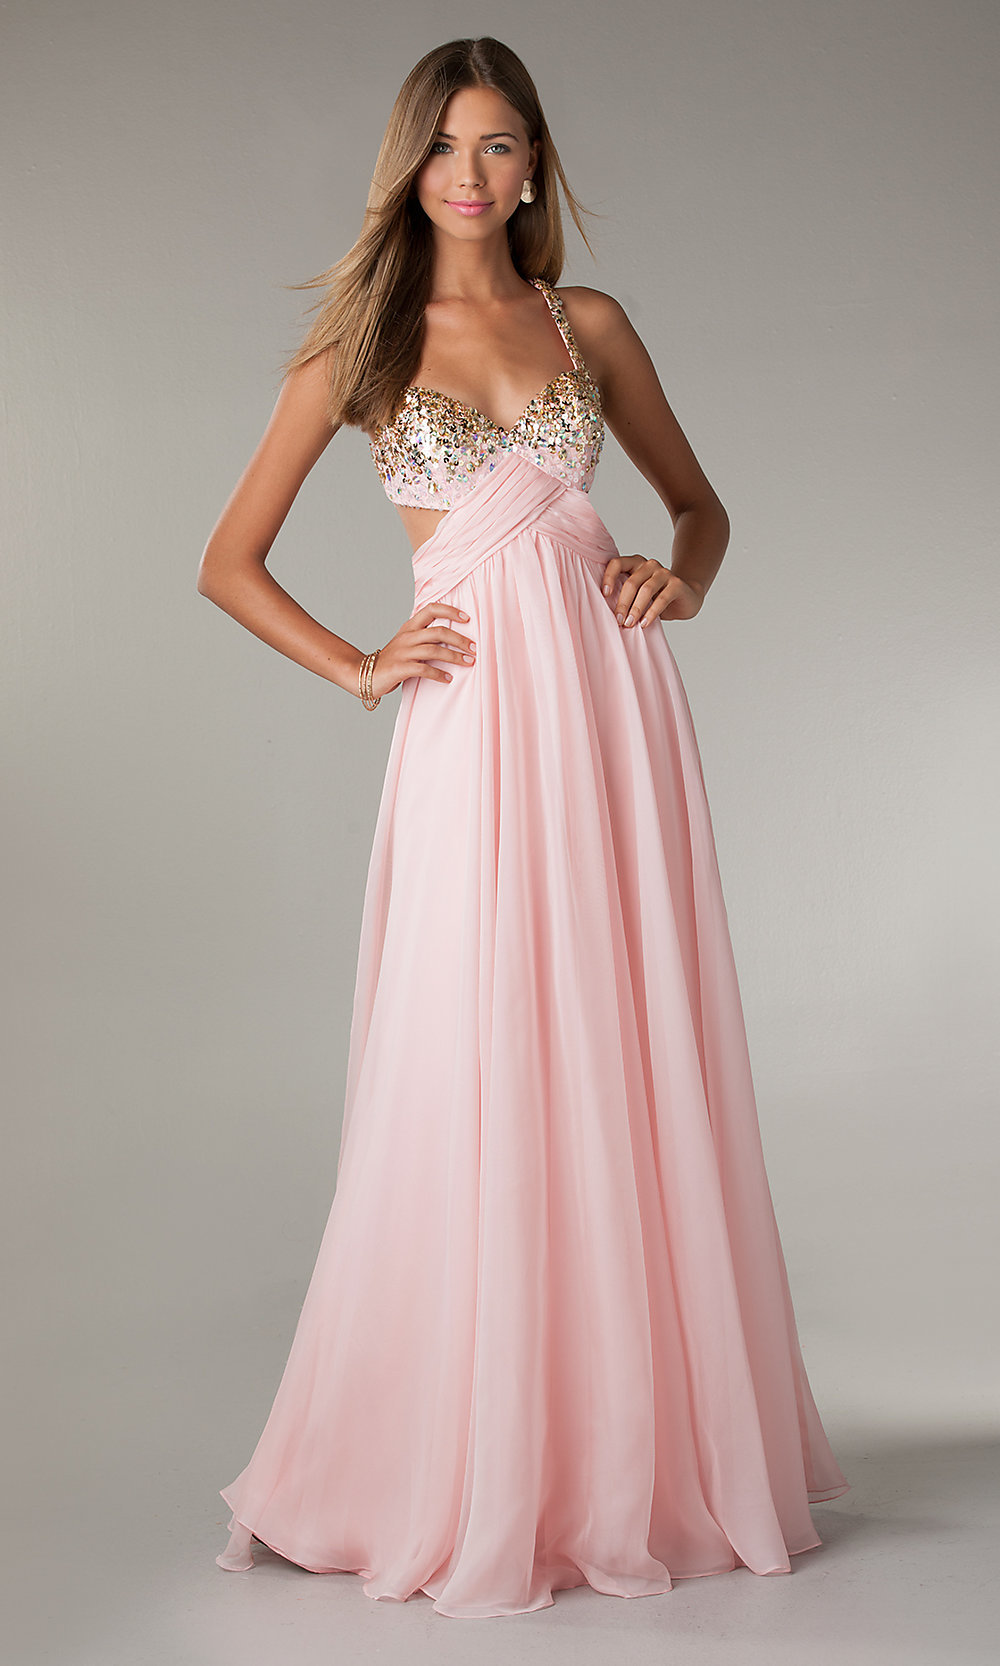 Long Cut Out Prom Dresses- Flirt Long Gowns for Prom- PromGirl